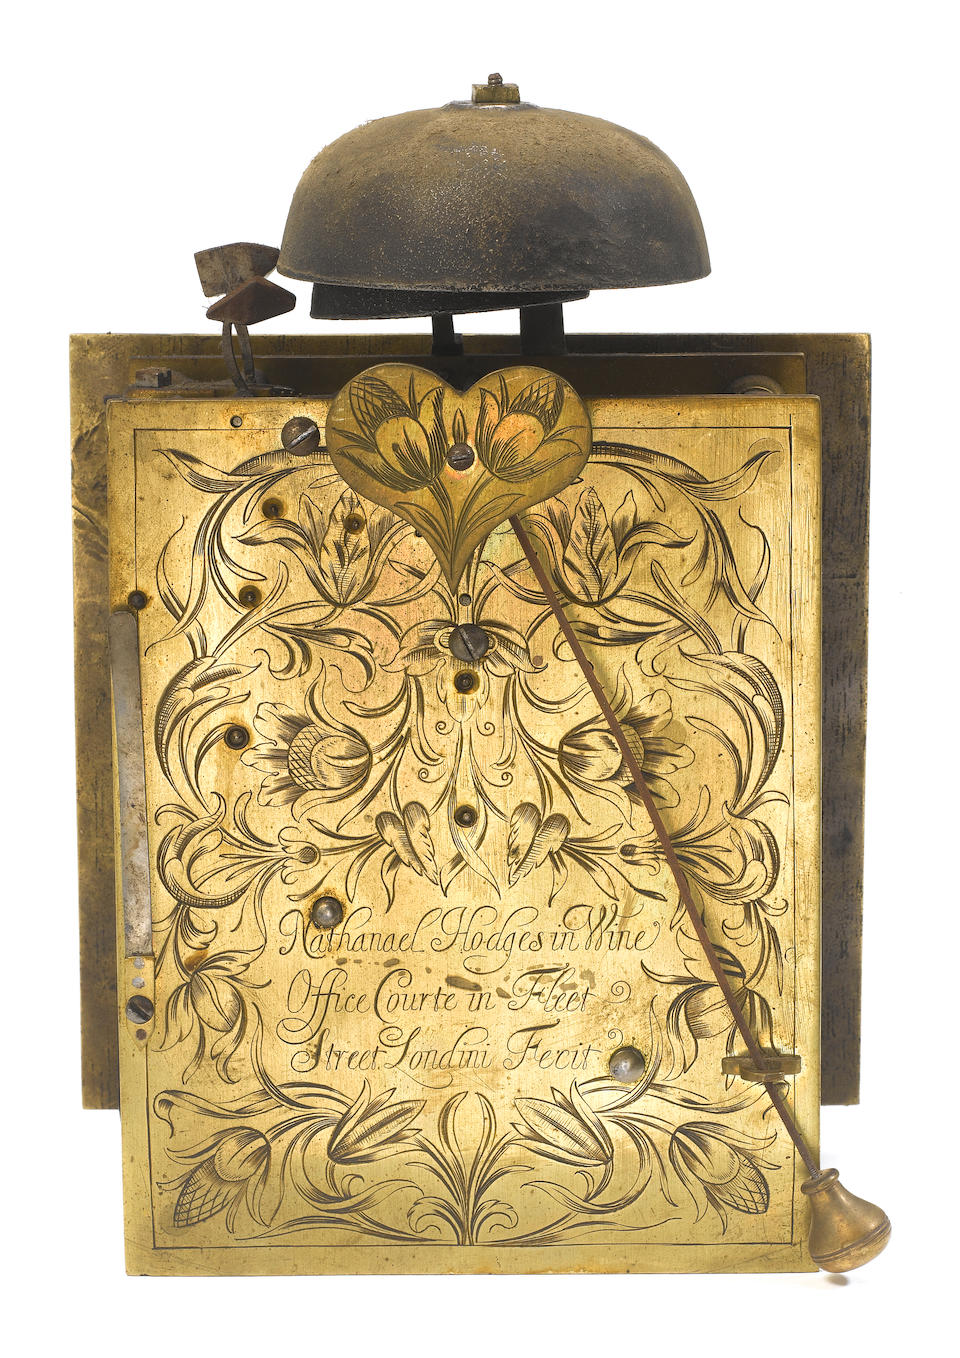 A fine late 17th century ebony veneered basket-topped quarter repeating bracket timepiece Nathaniel Hodges in Wine Office Courte in Fleet Street, Londini Fecit